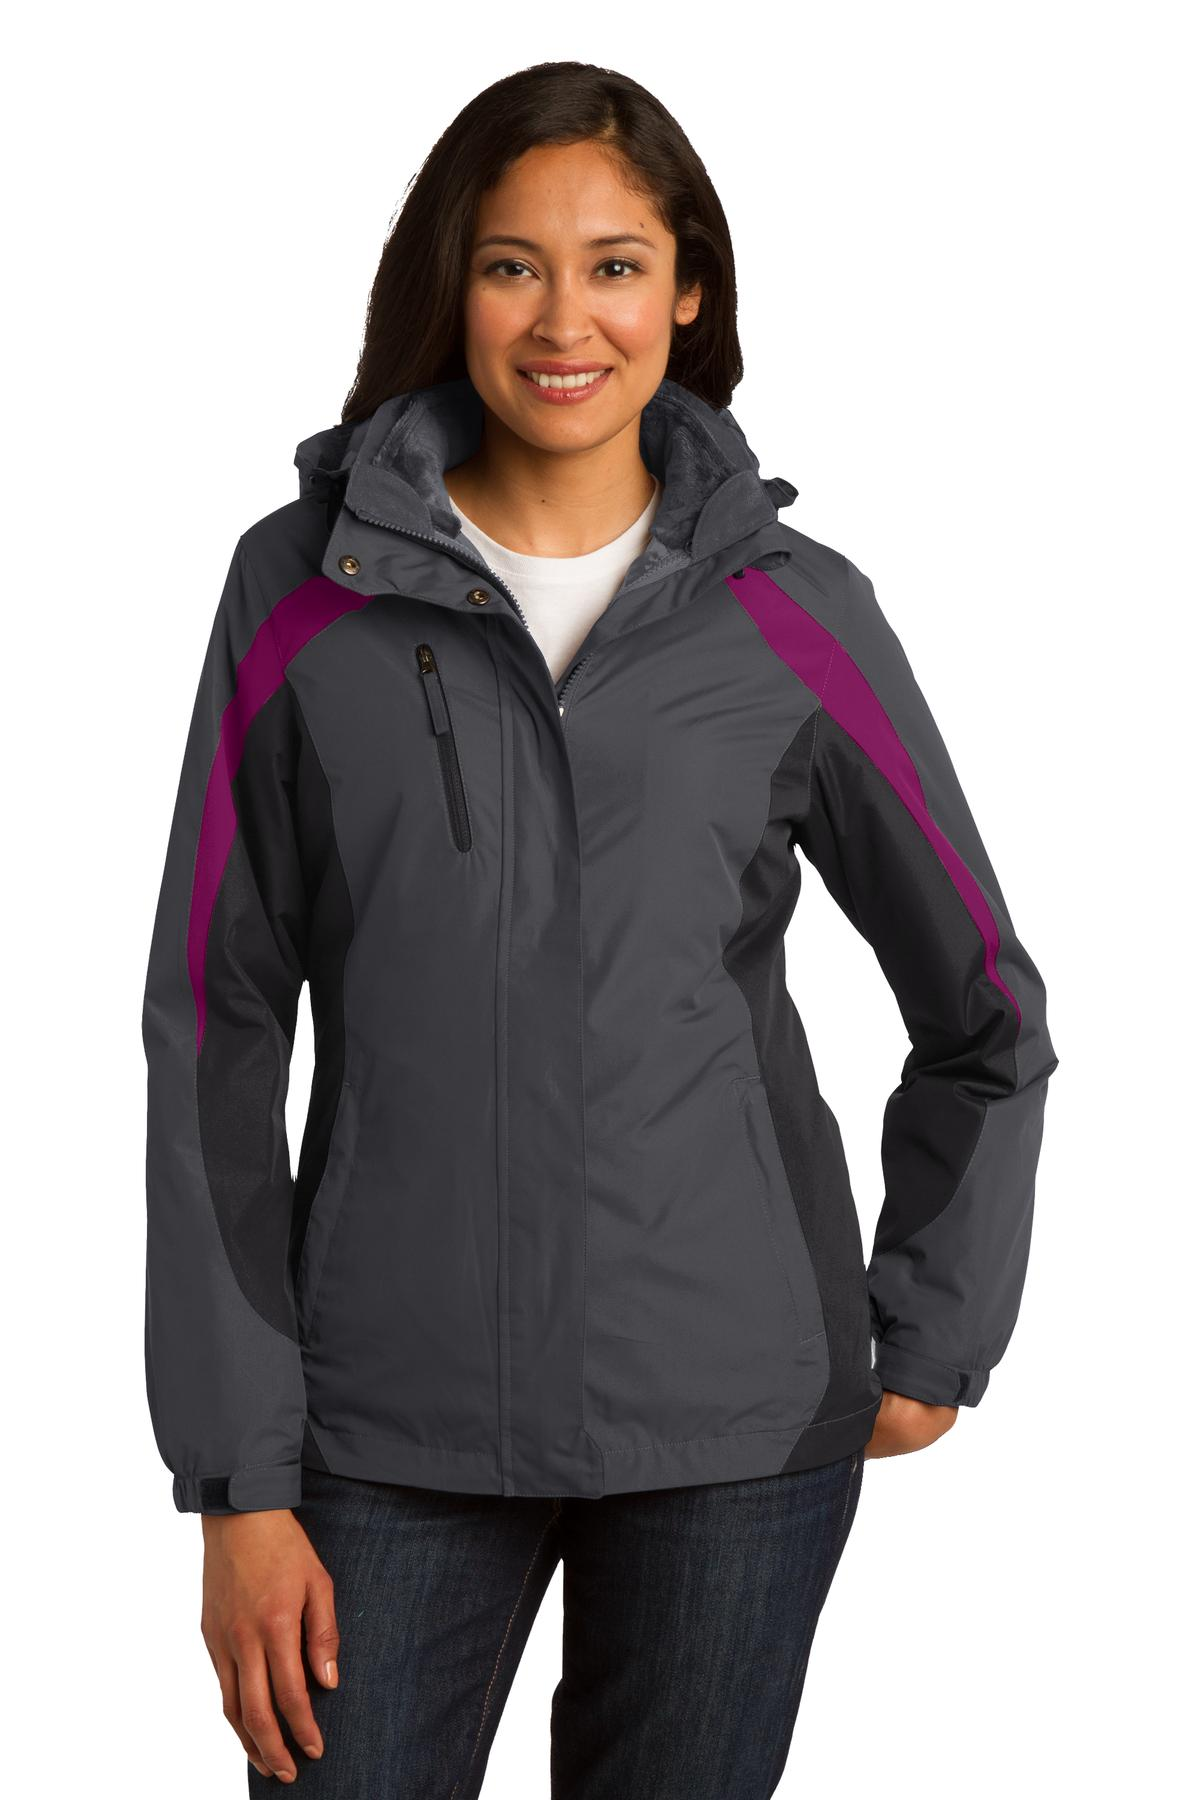 Port Authority ®  Ladies Colorblock 3-in-1 Jacket. L321 - Magnet/ Black/ Very Berry